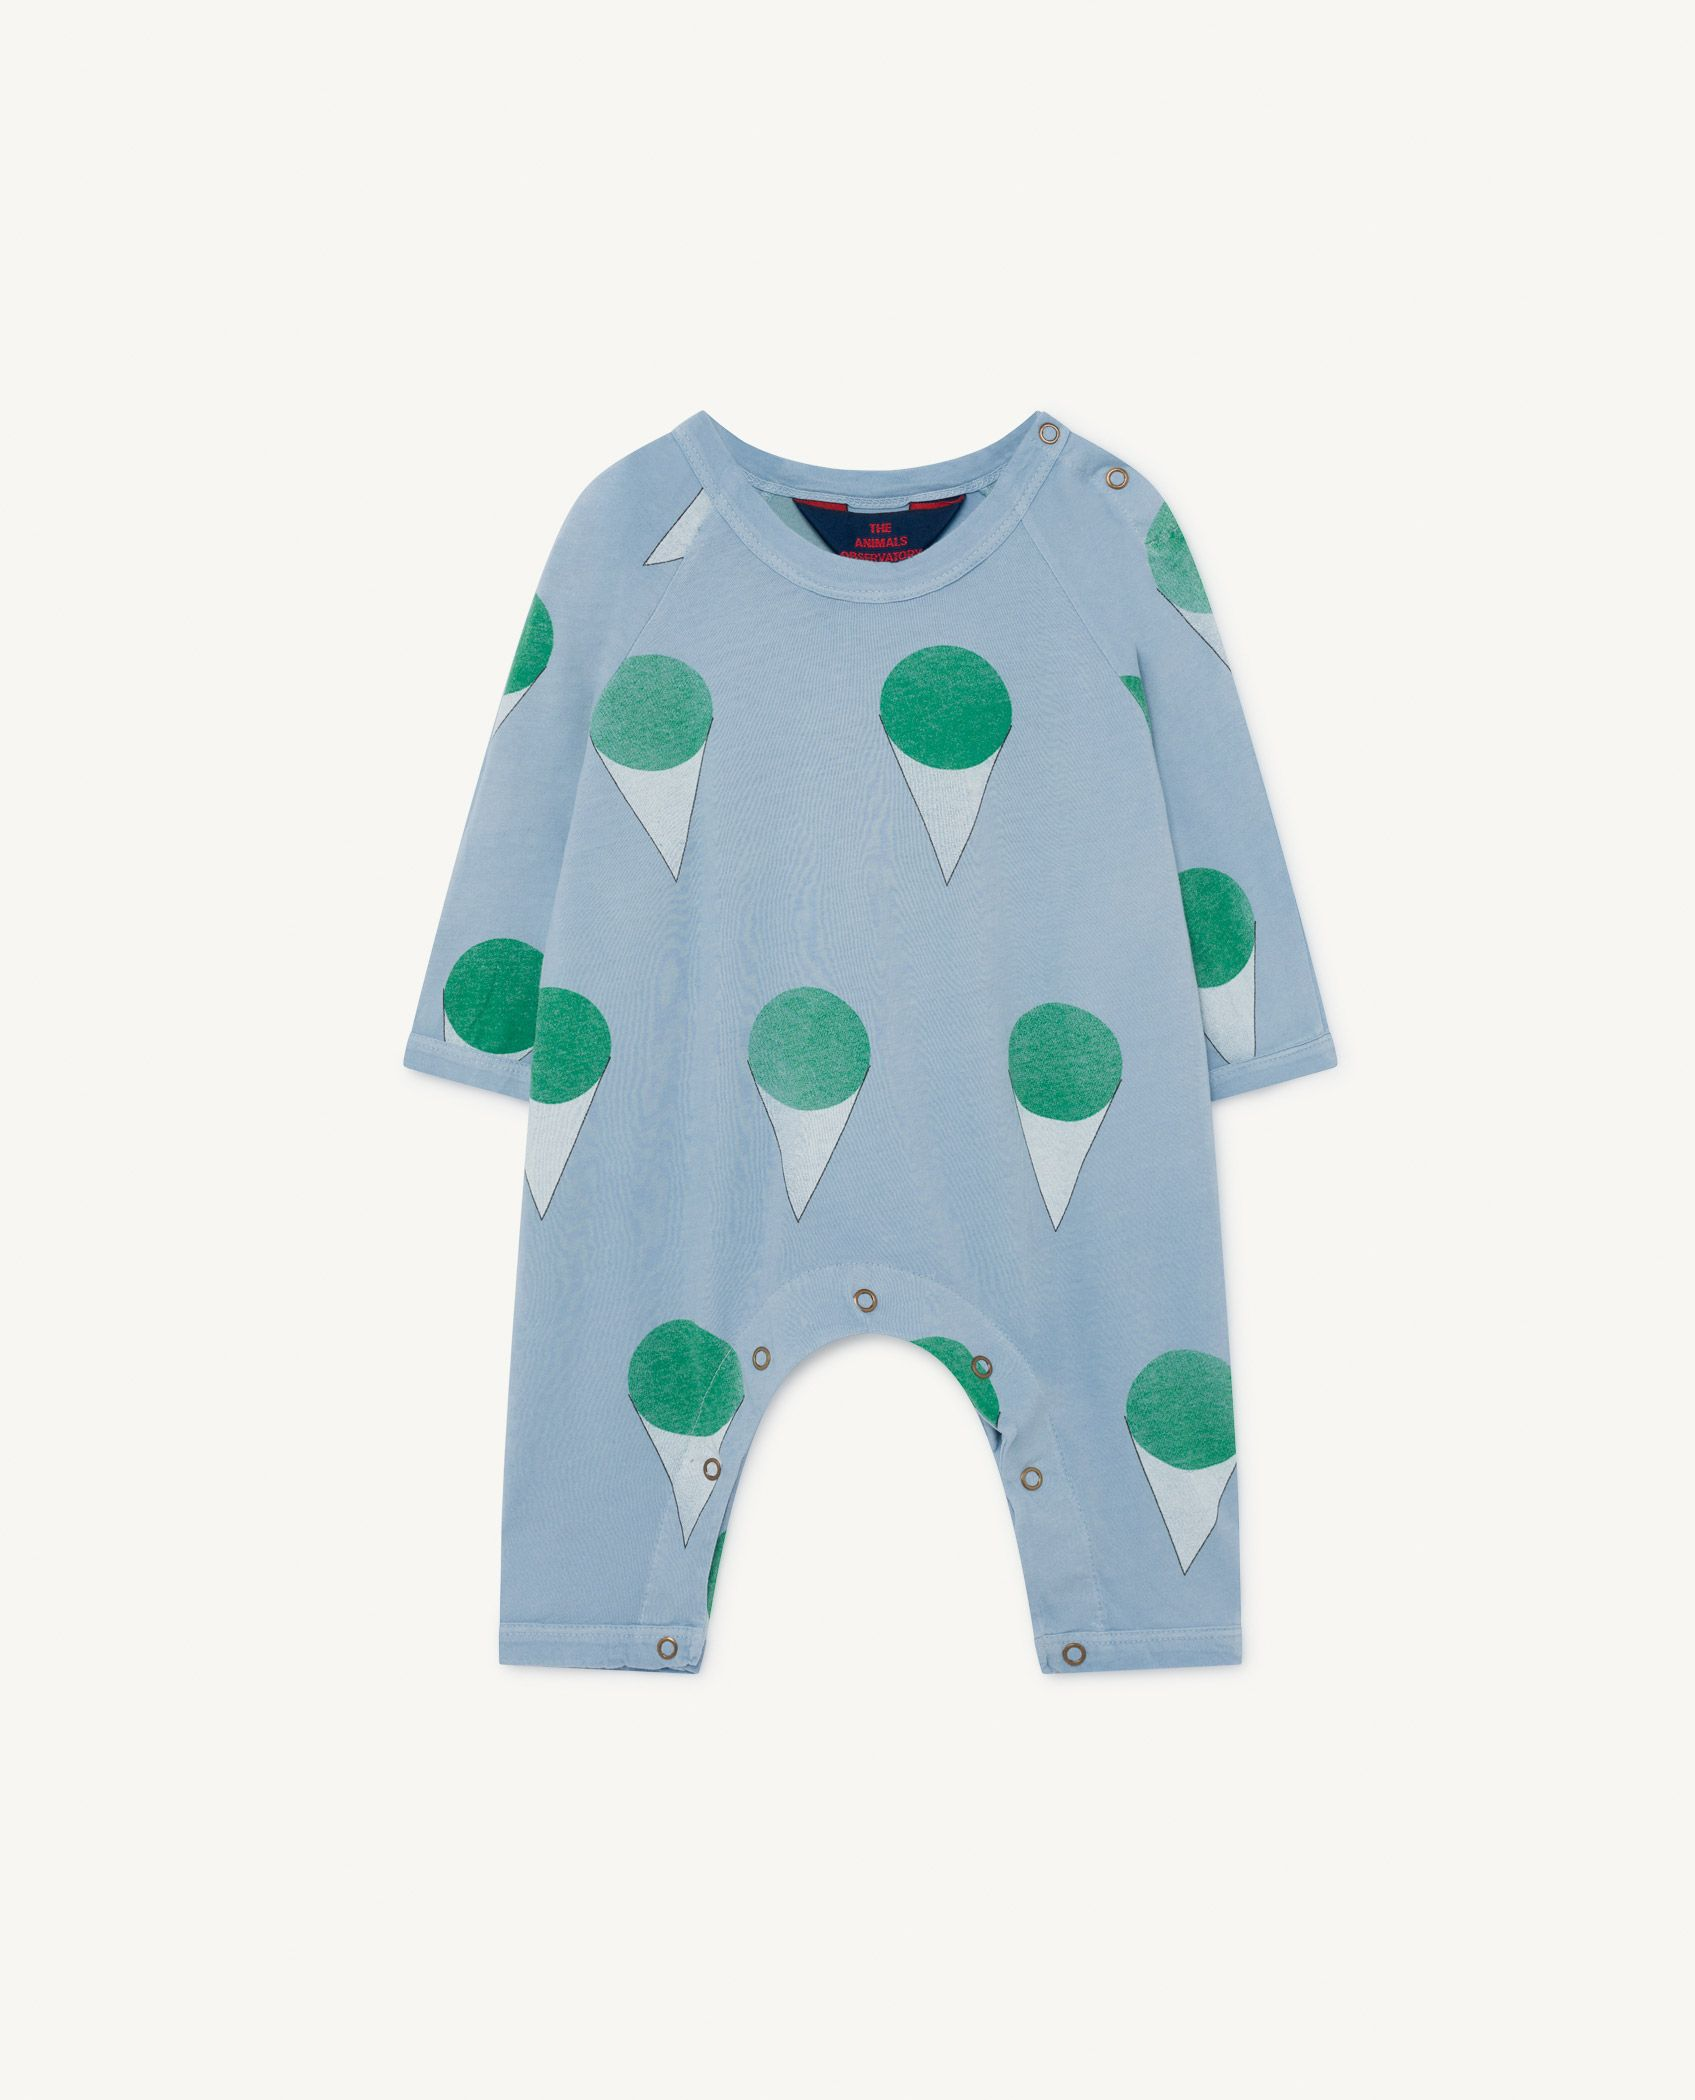 Owl Baby Clothes : clothes, Pyjamas, Clothes